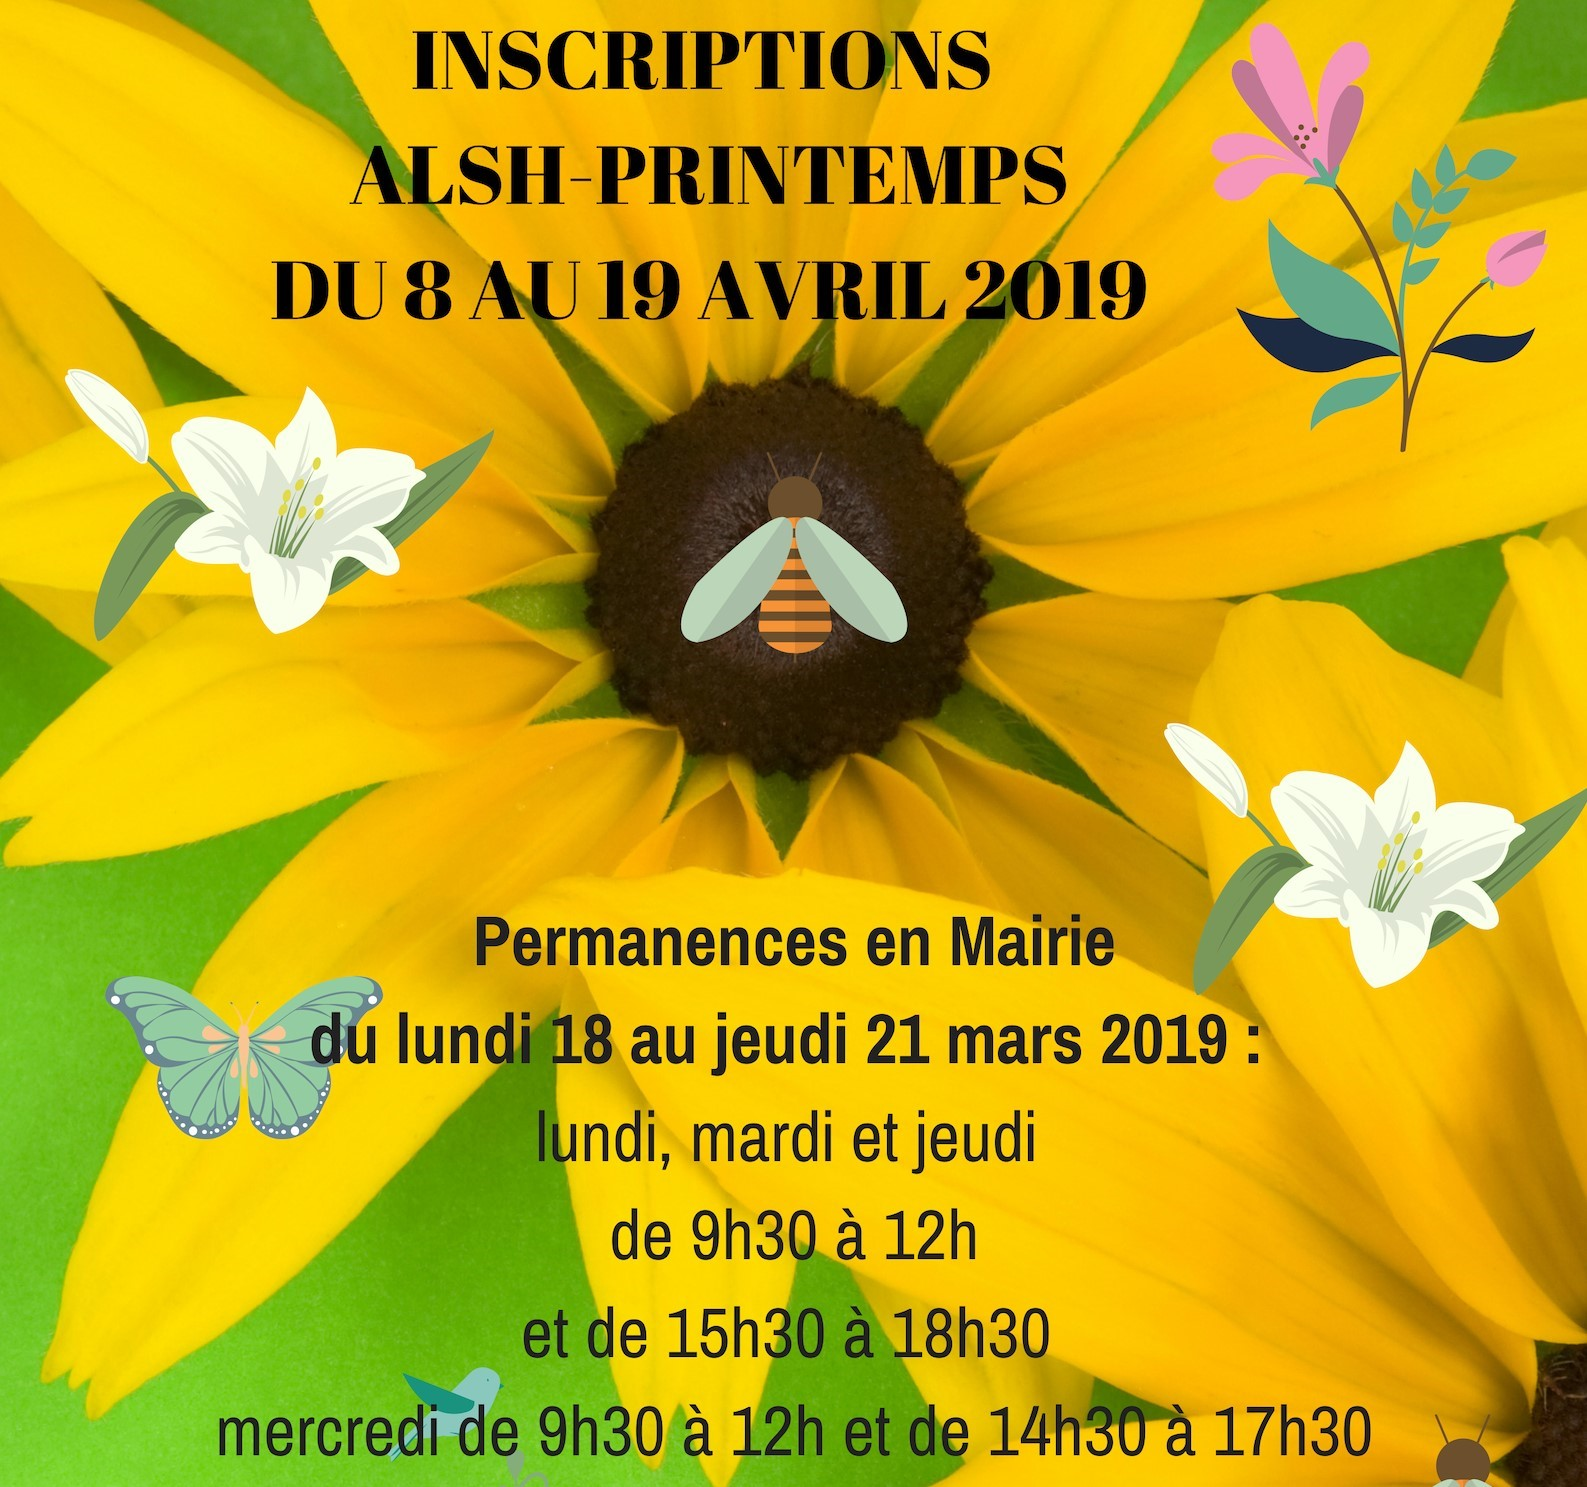 AFFICHE INSCRIPTIONS ALSH AVRIL 2019ALAUNE